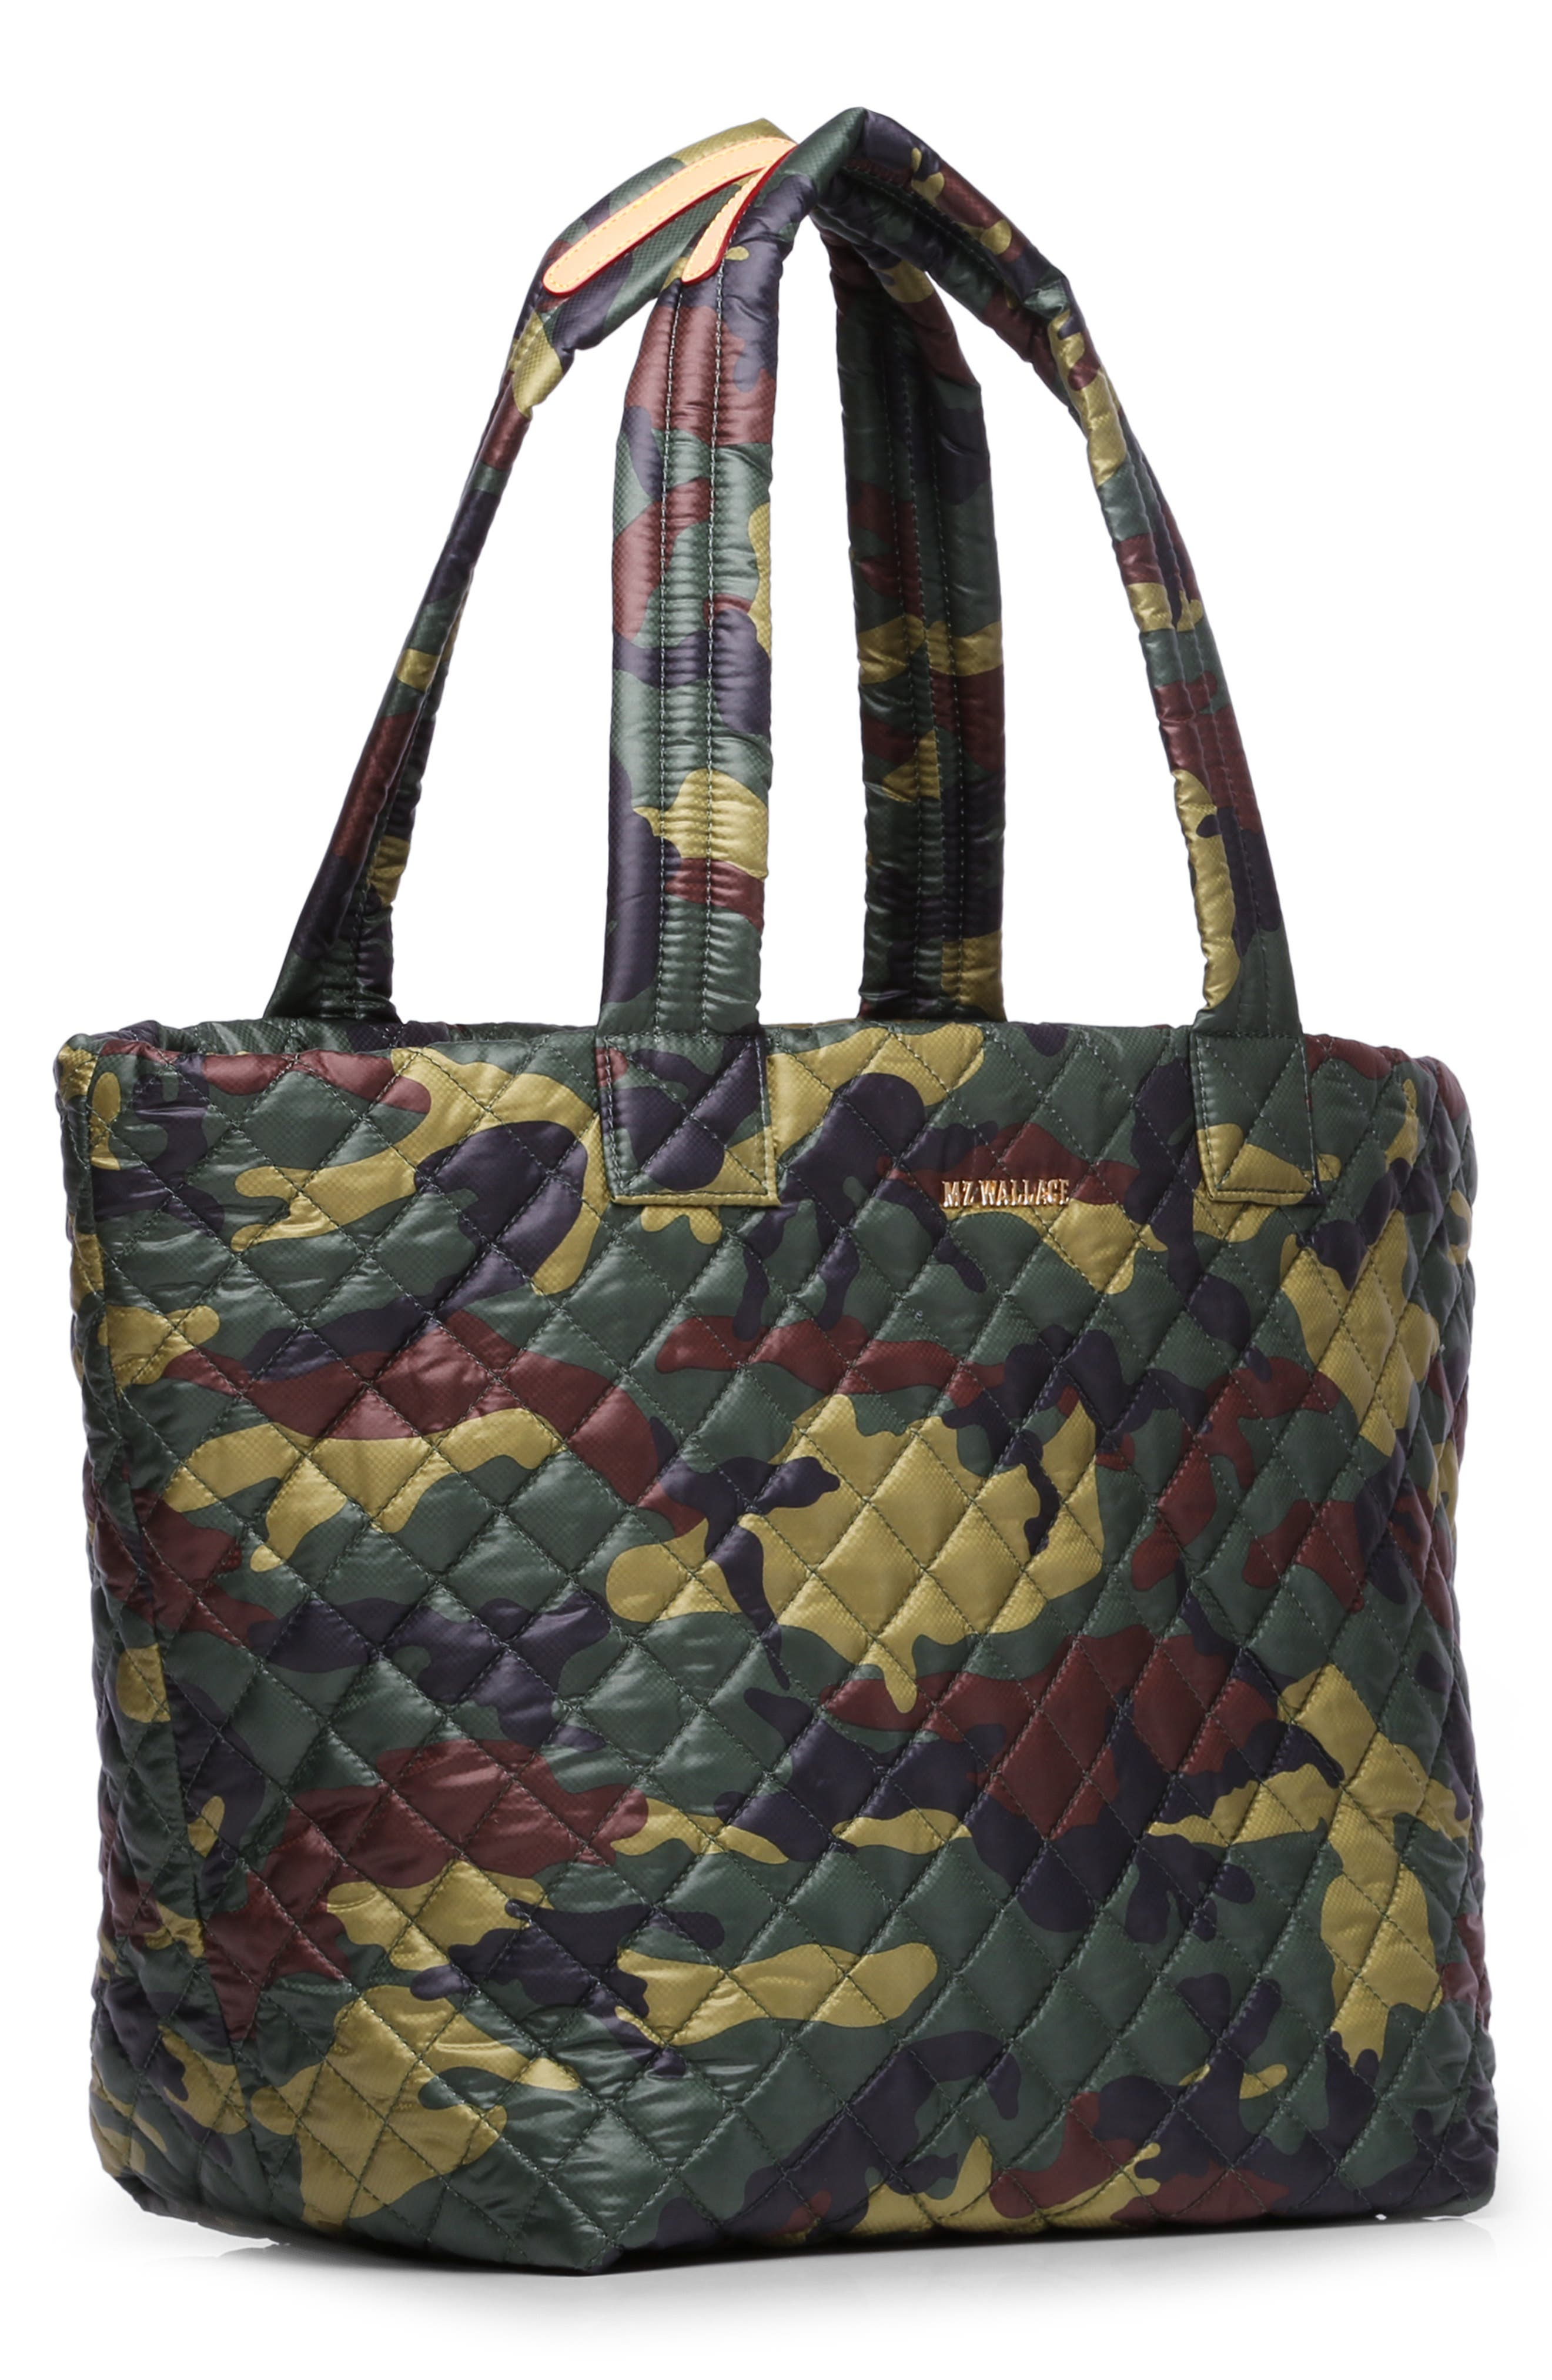 Medium Metro Tote,                             Alternate thumbnail 3, color,                             300